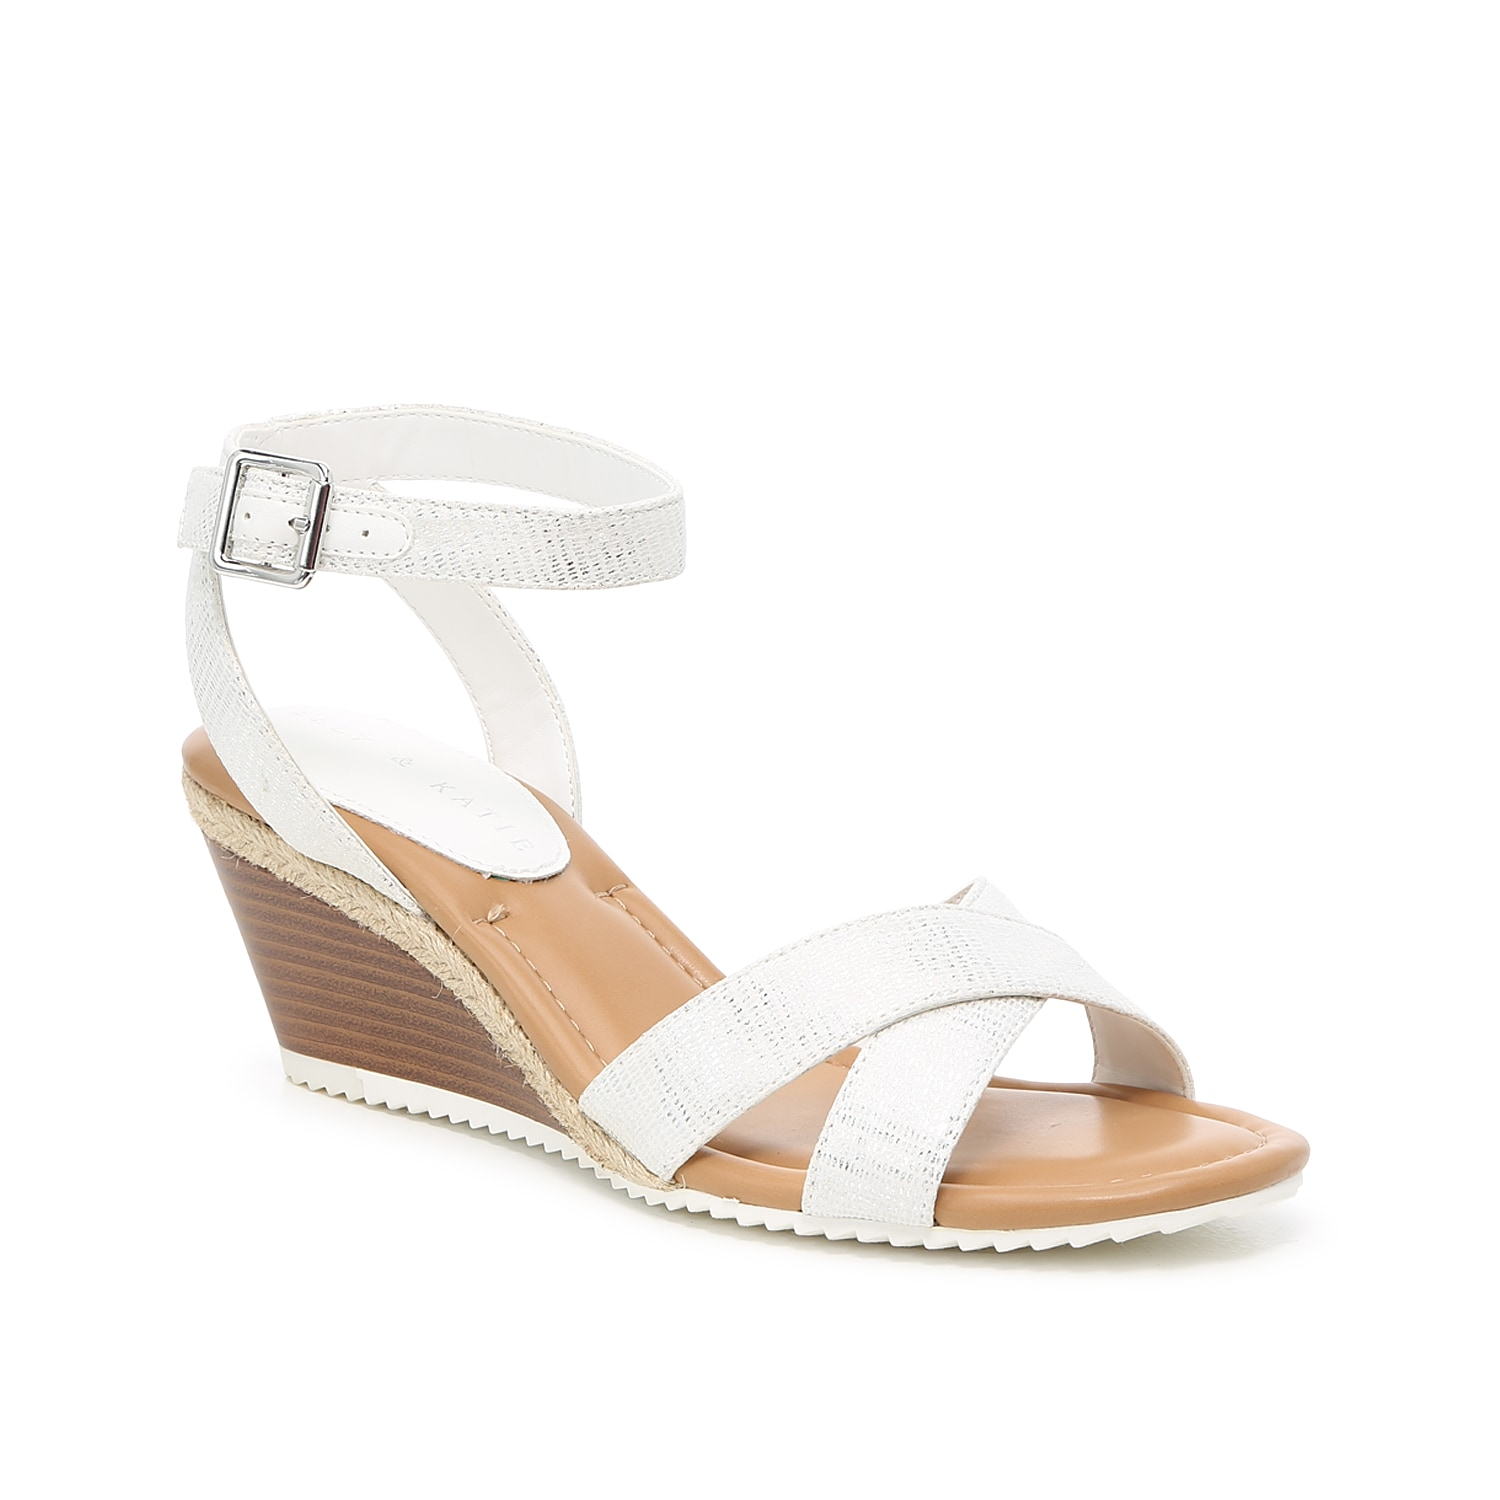 Sweet style comes naturally when stepping out in the Emmaline wedge sandal from Kelly & Katie. The two-piece silhouette is paired with a natural espadrille trim and sporty sawtooth sole in contrasting white.